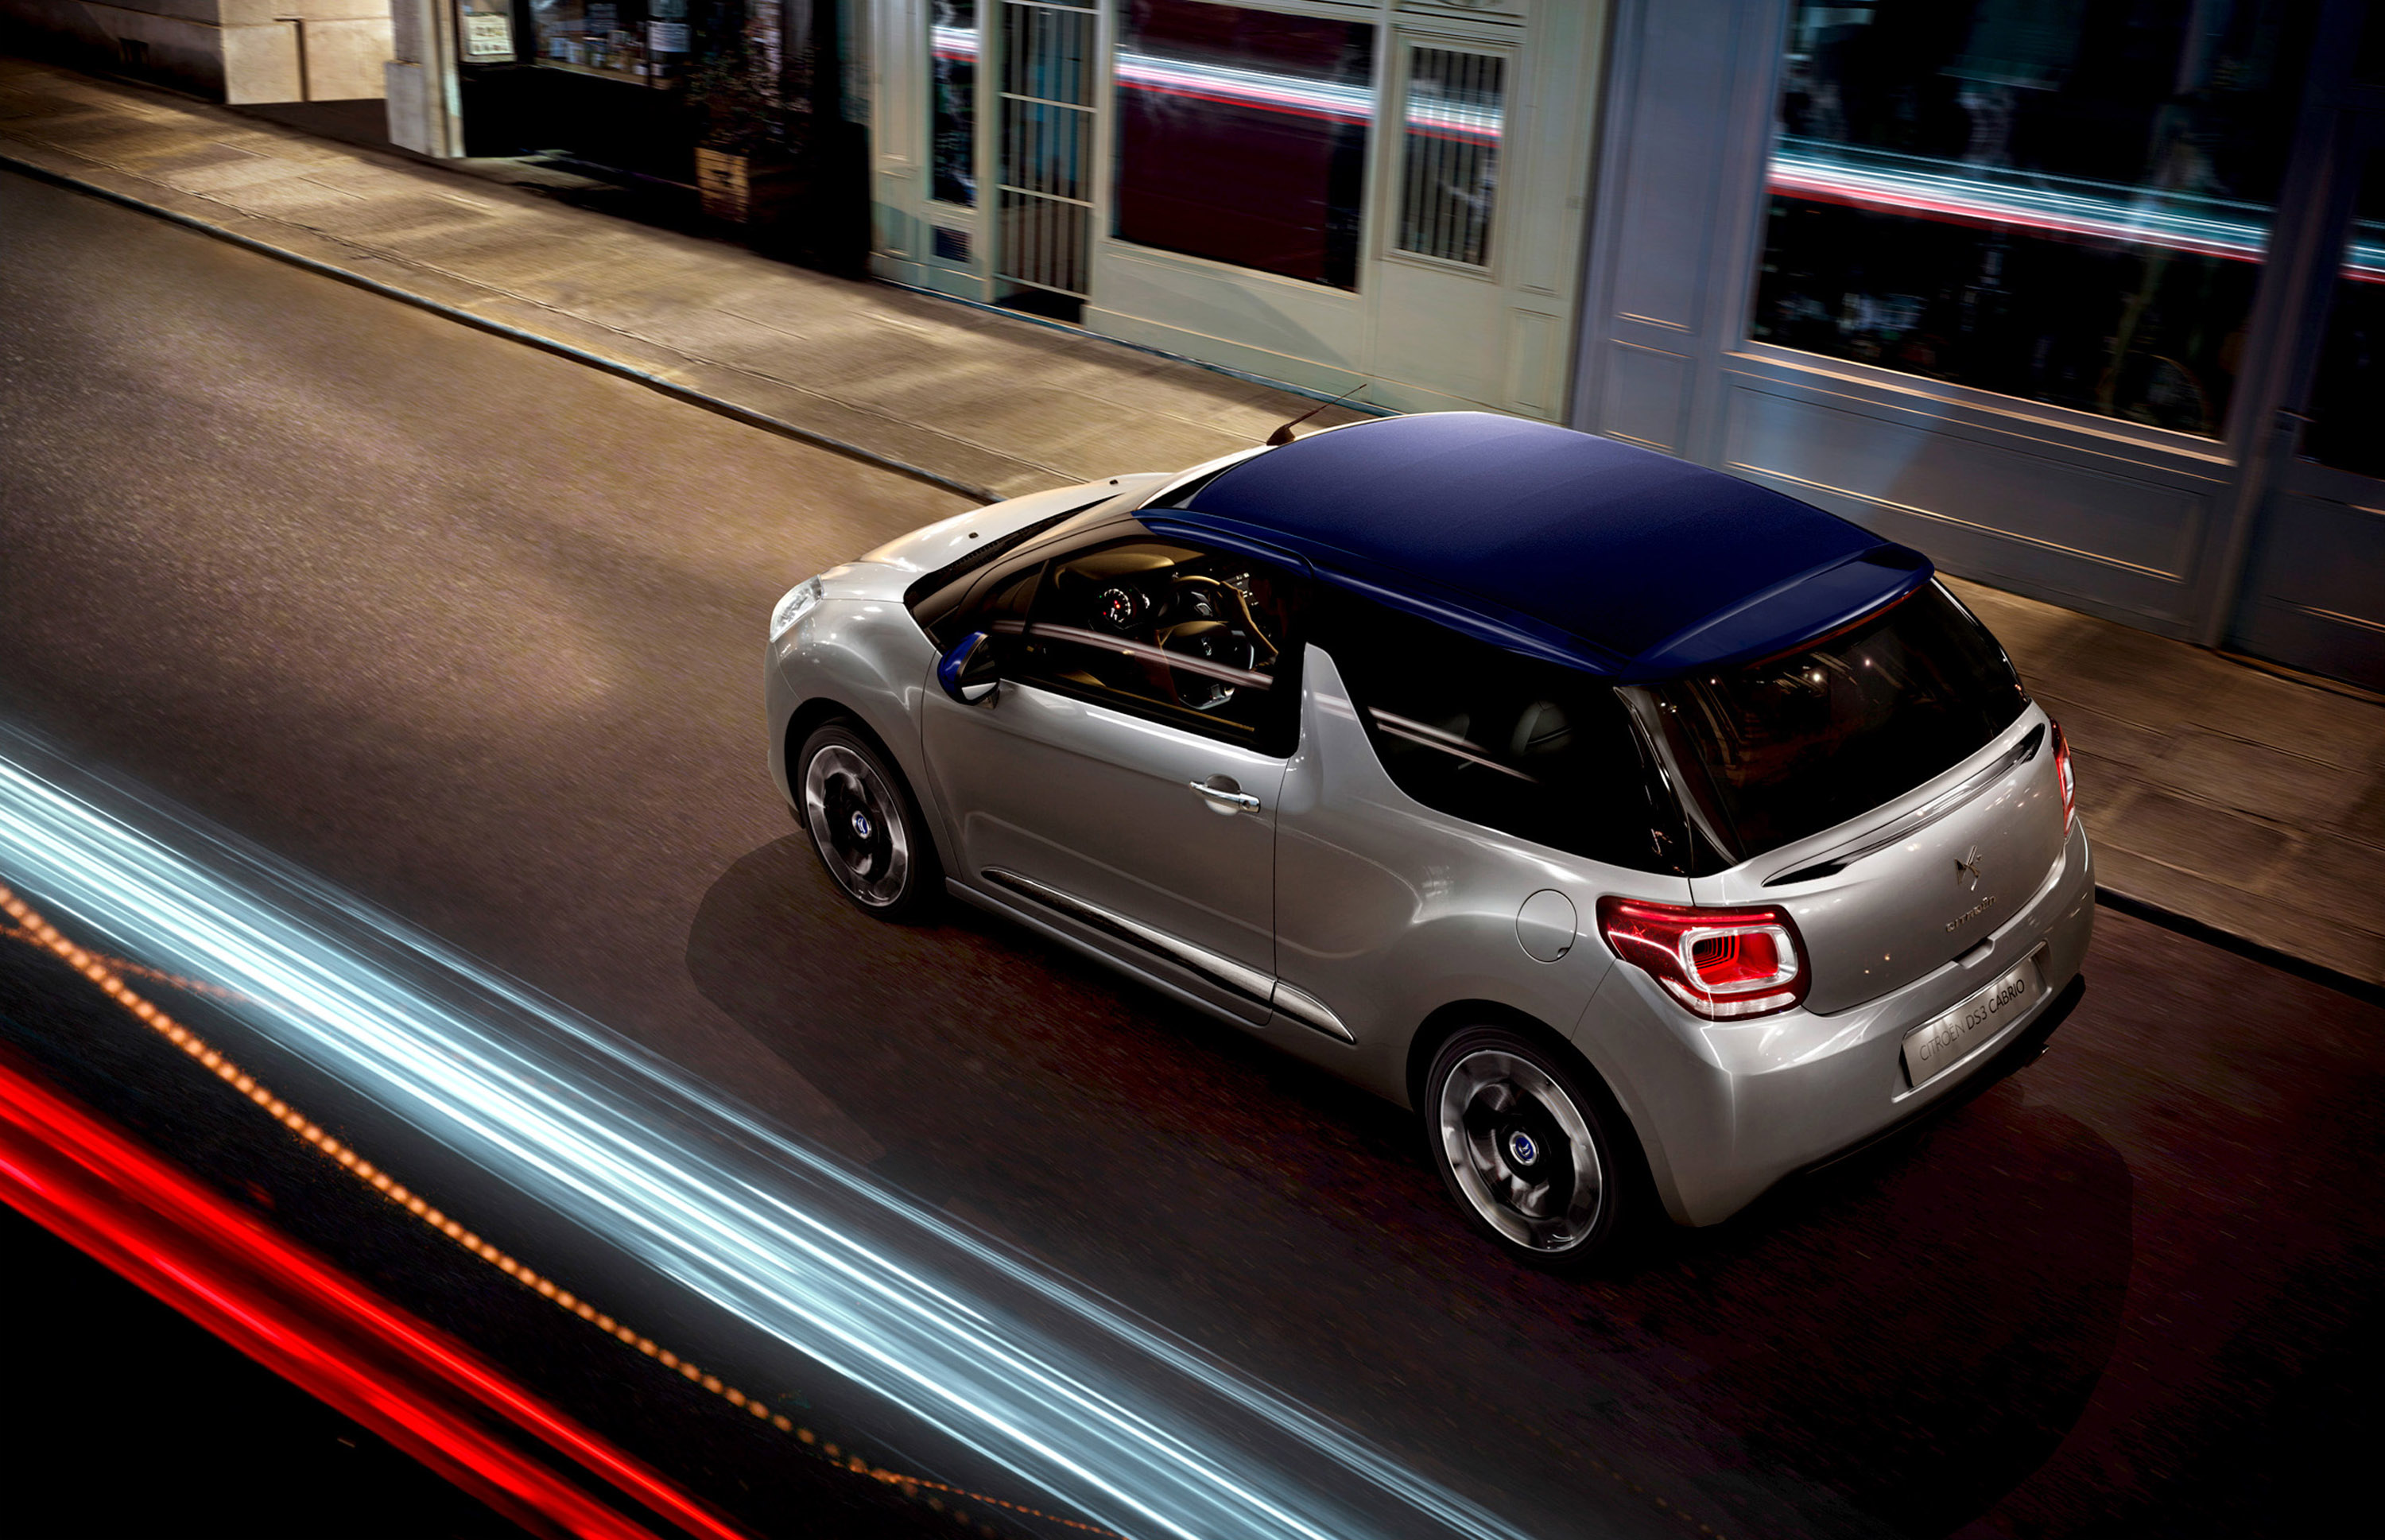 2014 citroen ds3 cabrio first pictures released video 2014 citroen ds3 cabrio vanachro Image collections